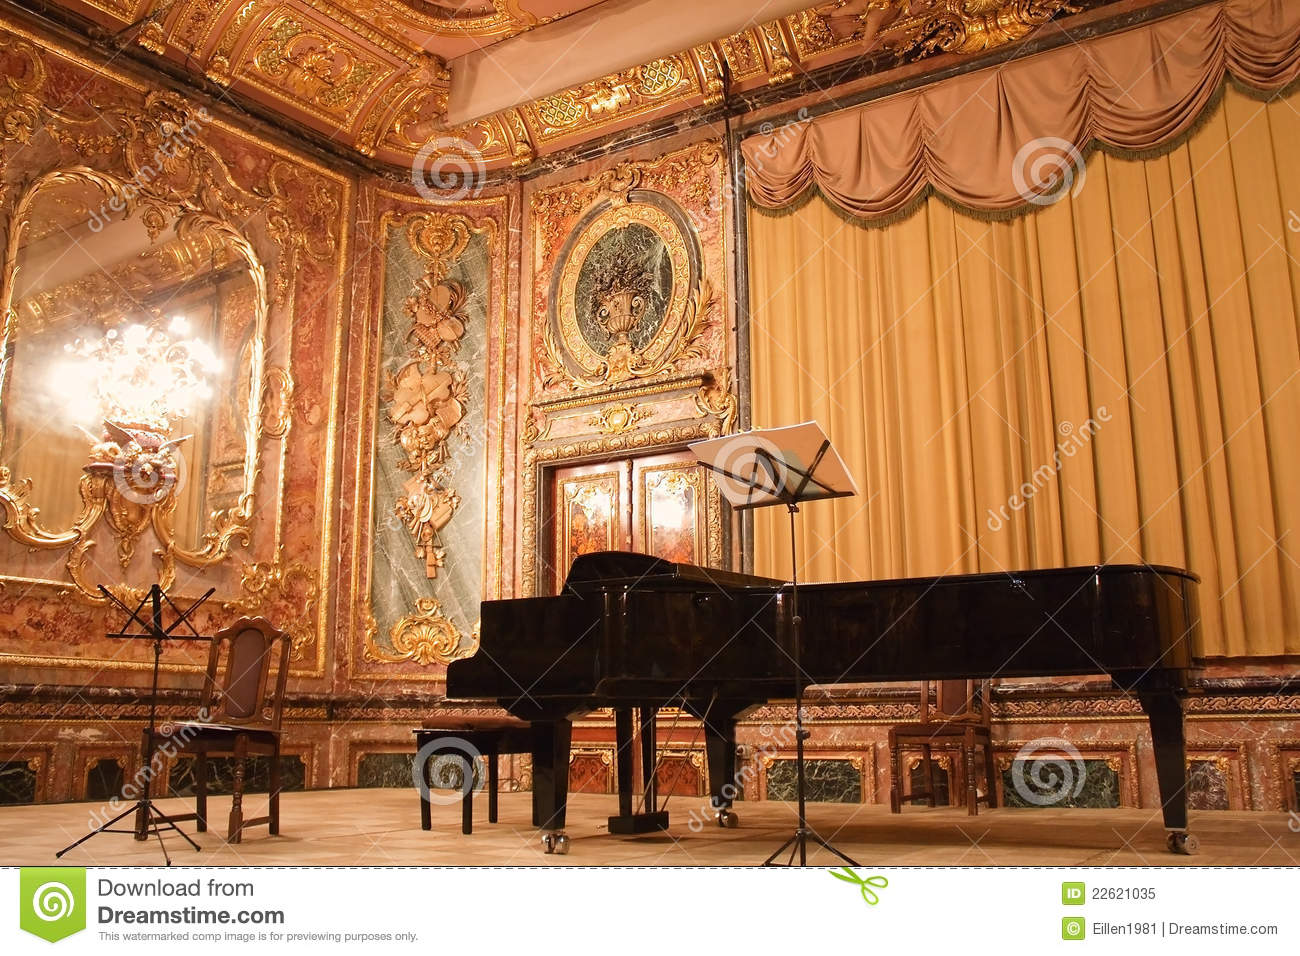 concert-grand-piano-polovtsov-mansion-22621035 Palace Luxury Home Plans on luxury mountain plans, luxury apartment plans, luxury white house plans, luxury cottage plans, luxury castle plans, luxury estate plans, luxury farm plans, luxury building plans, luxury bungalow plans, luxury office plans, luxury mansion plans, luxury landscape plans,